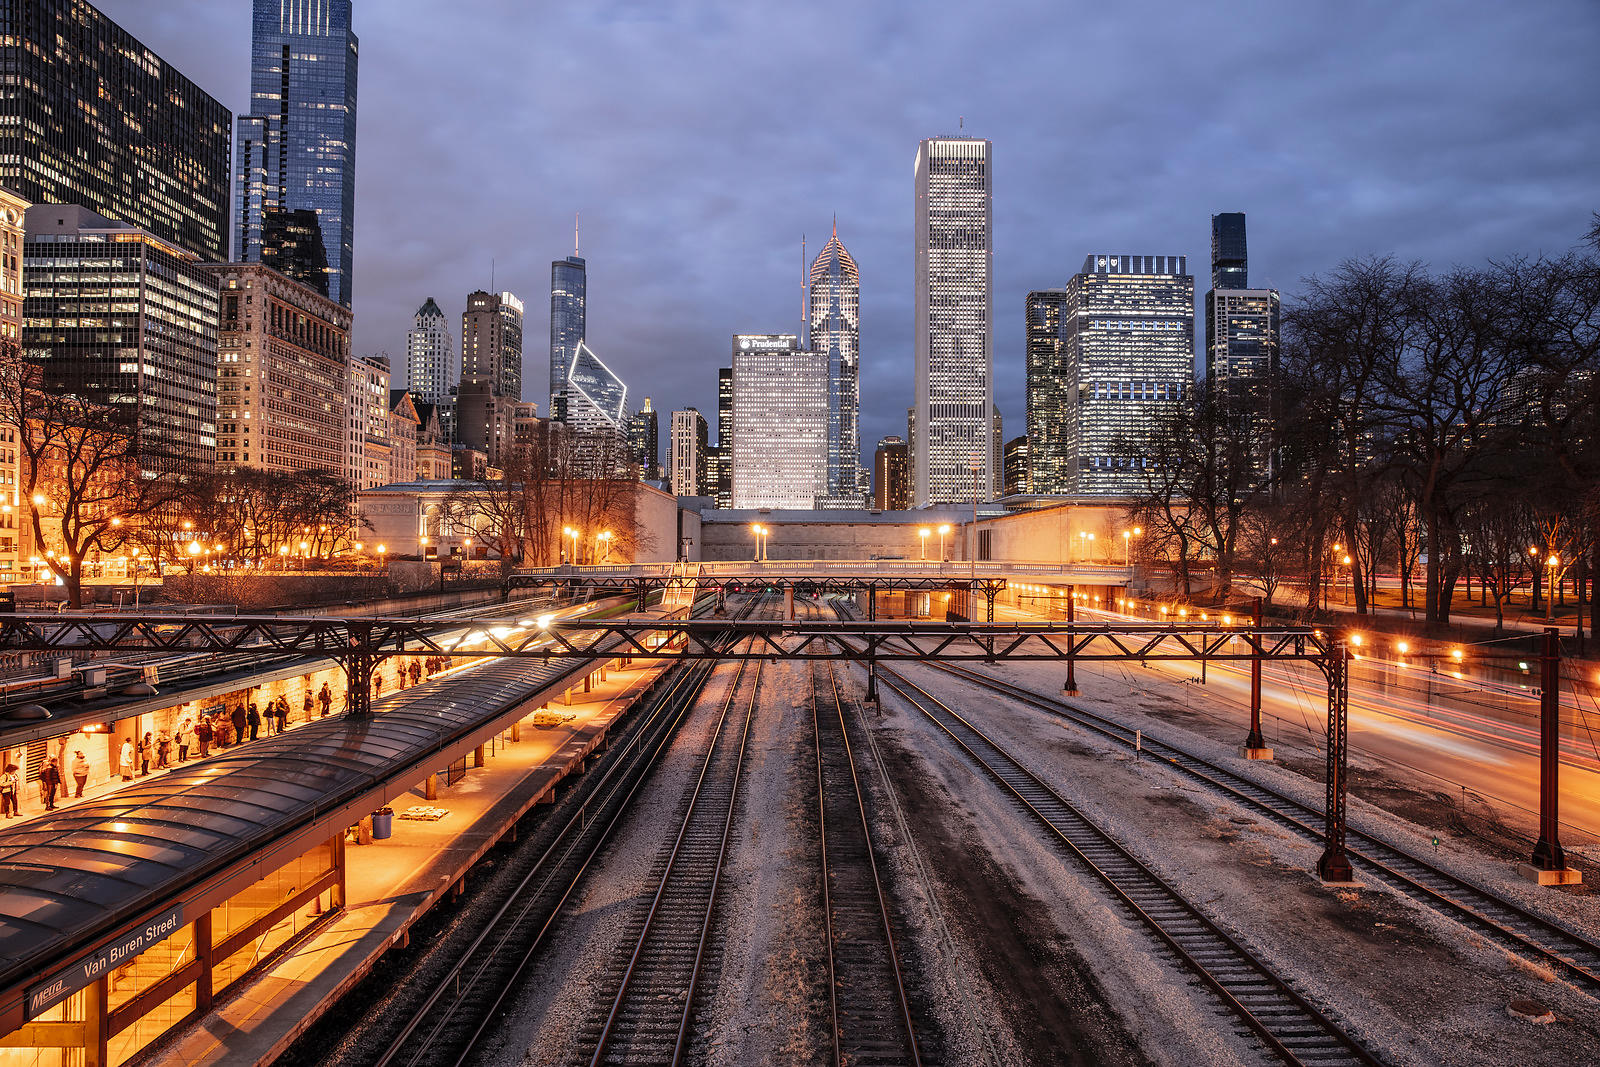 Van Buren Street: Chicago 2020  Photographer  Neil Emmerson  Edition of 25.